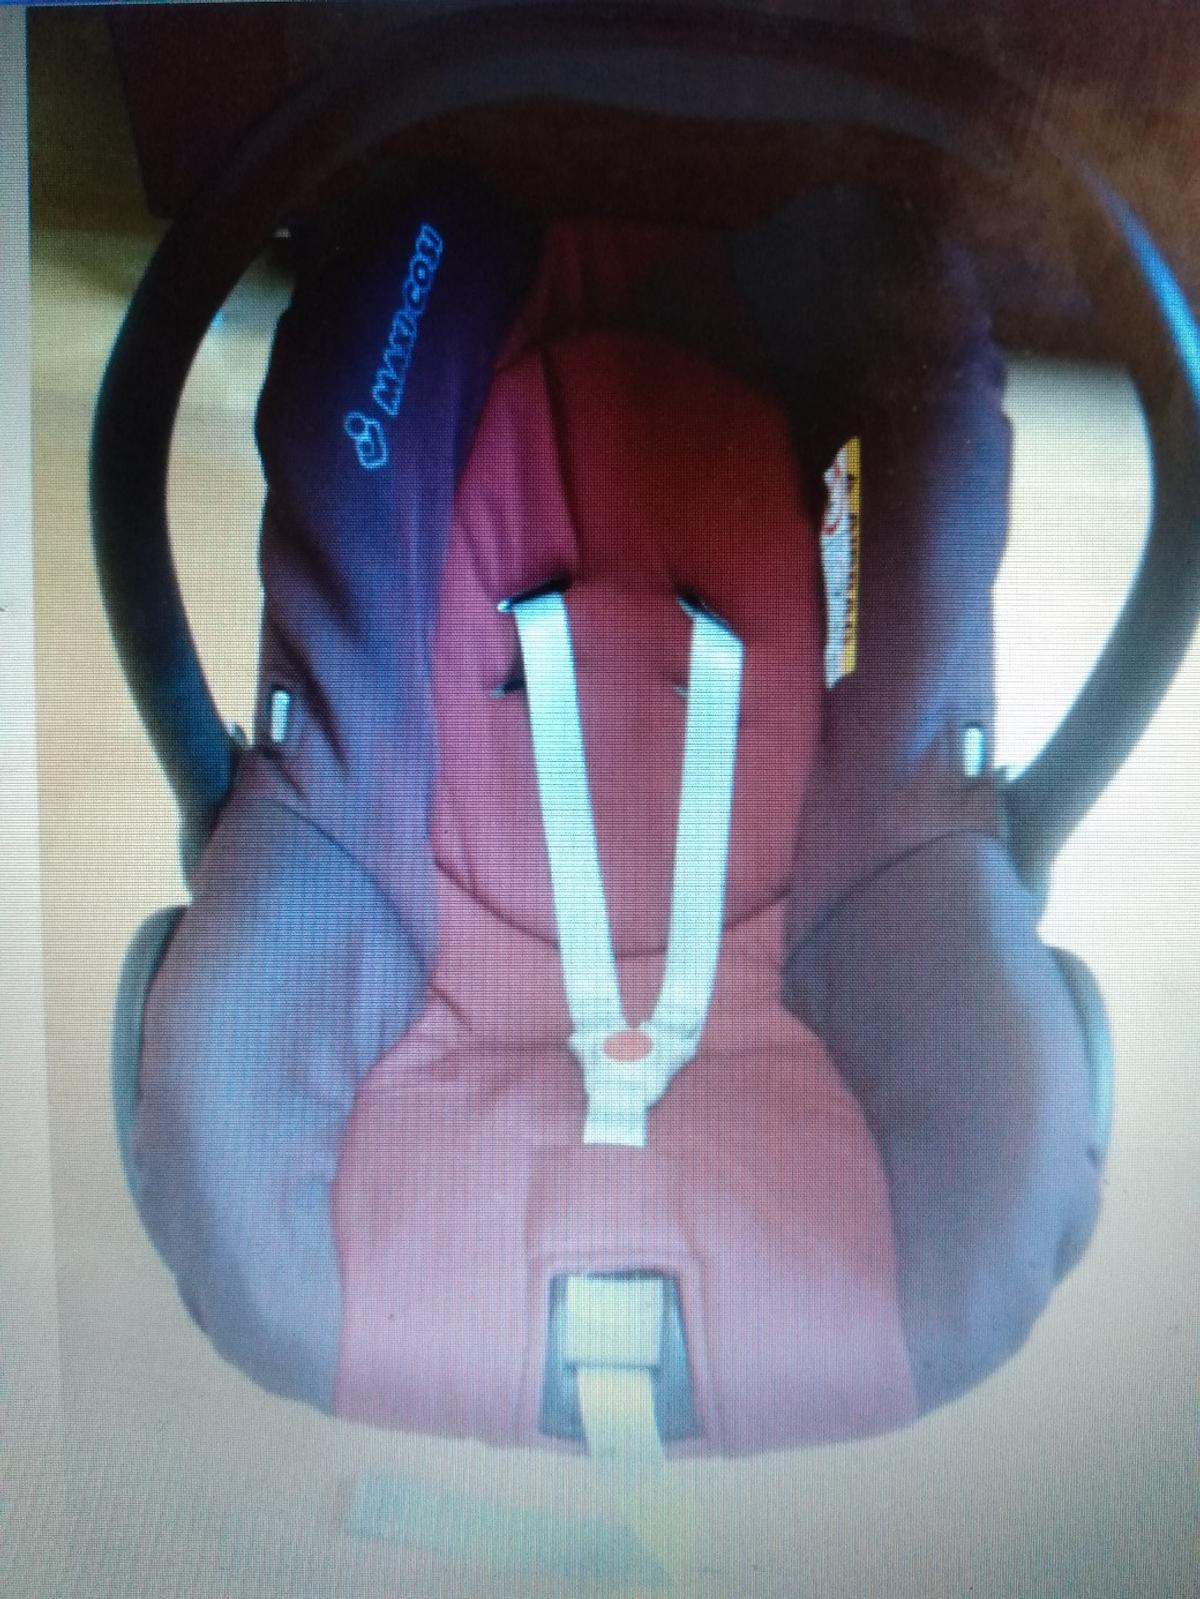 Maxi Cosi Citi car seat universal 0-13kg from non-smoking, pet free home in a good condition